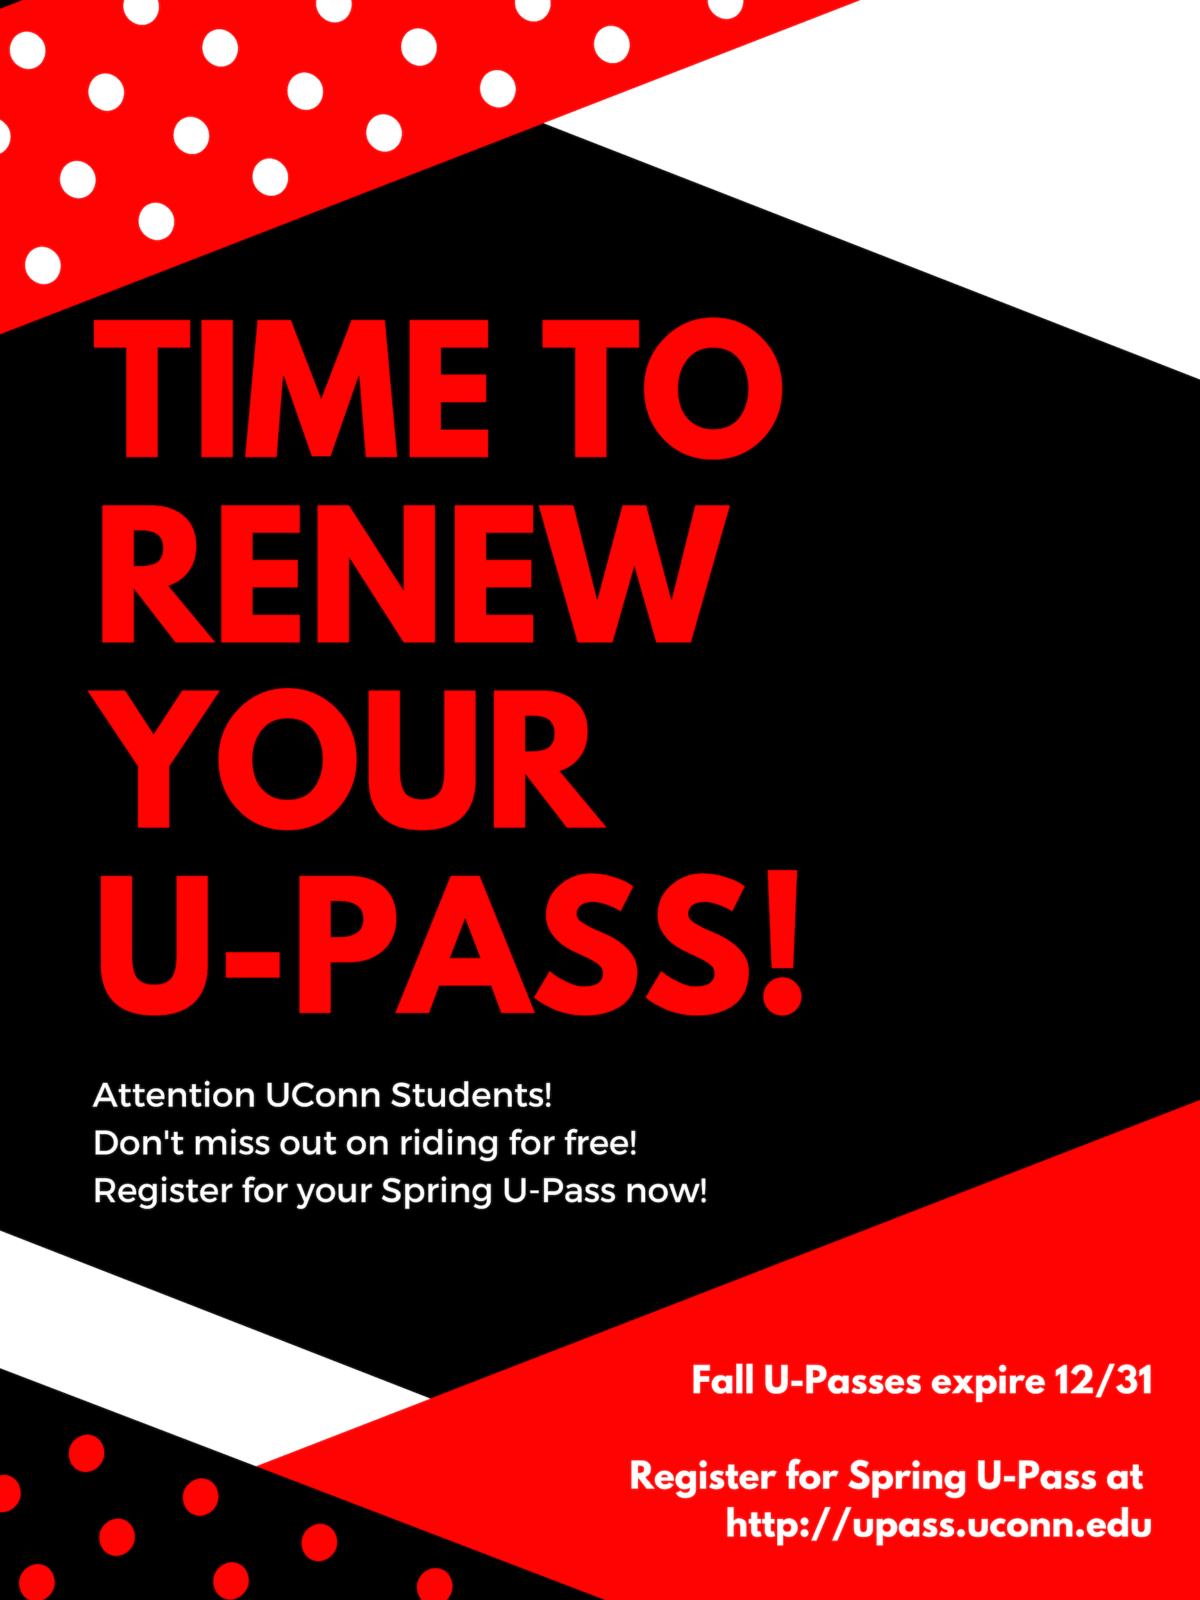 Students – Remember to renew your U-Pass!